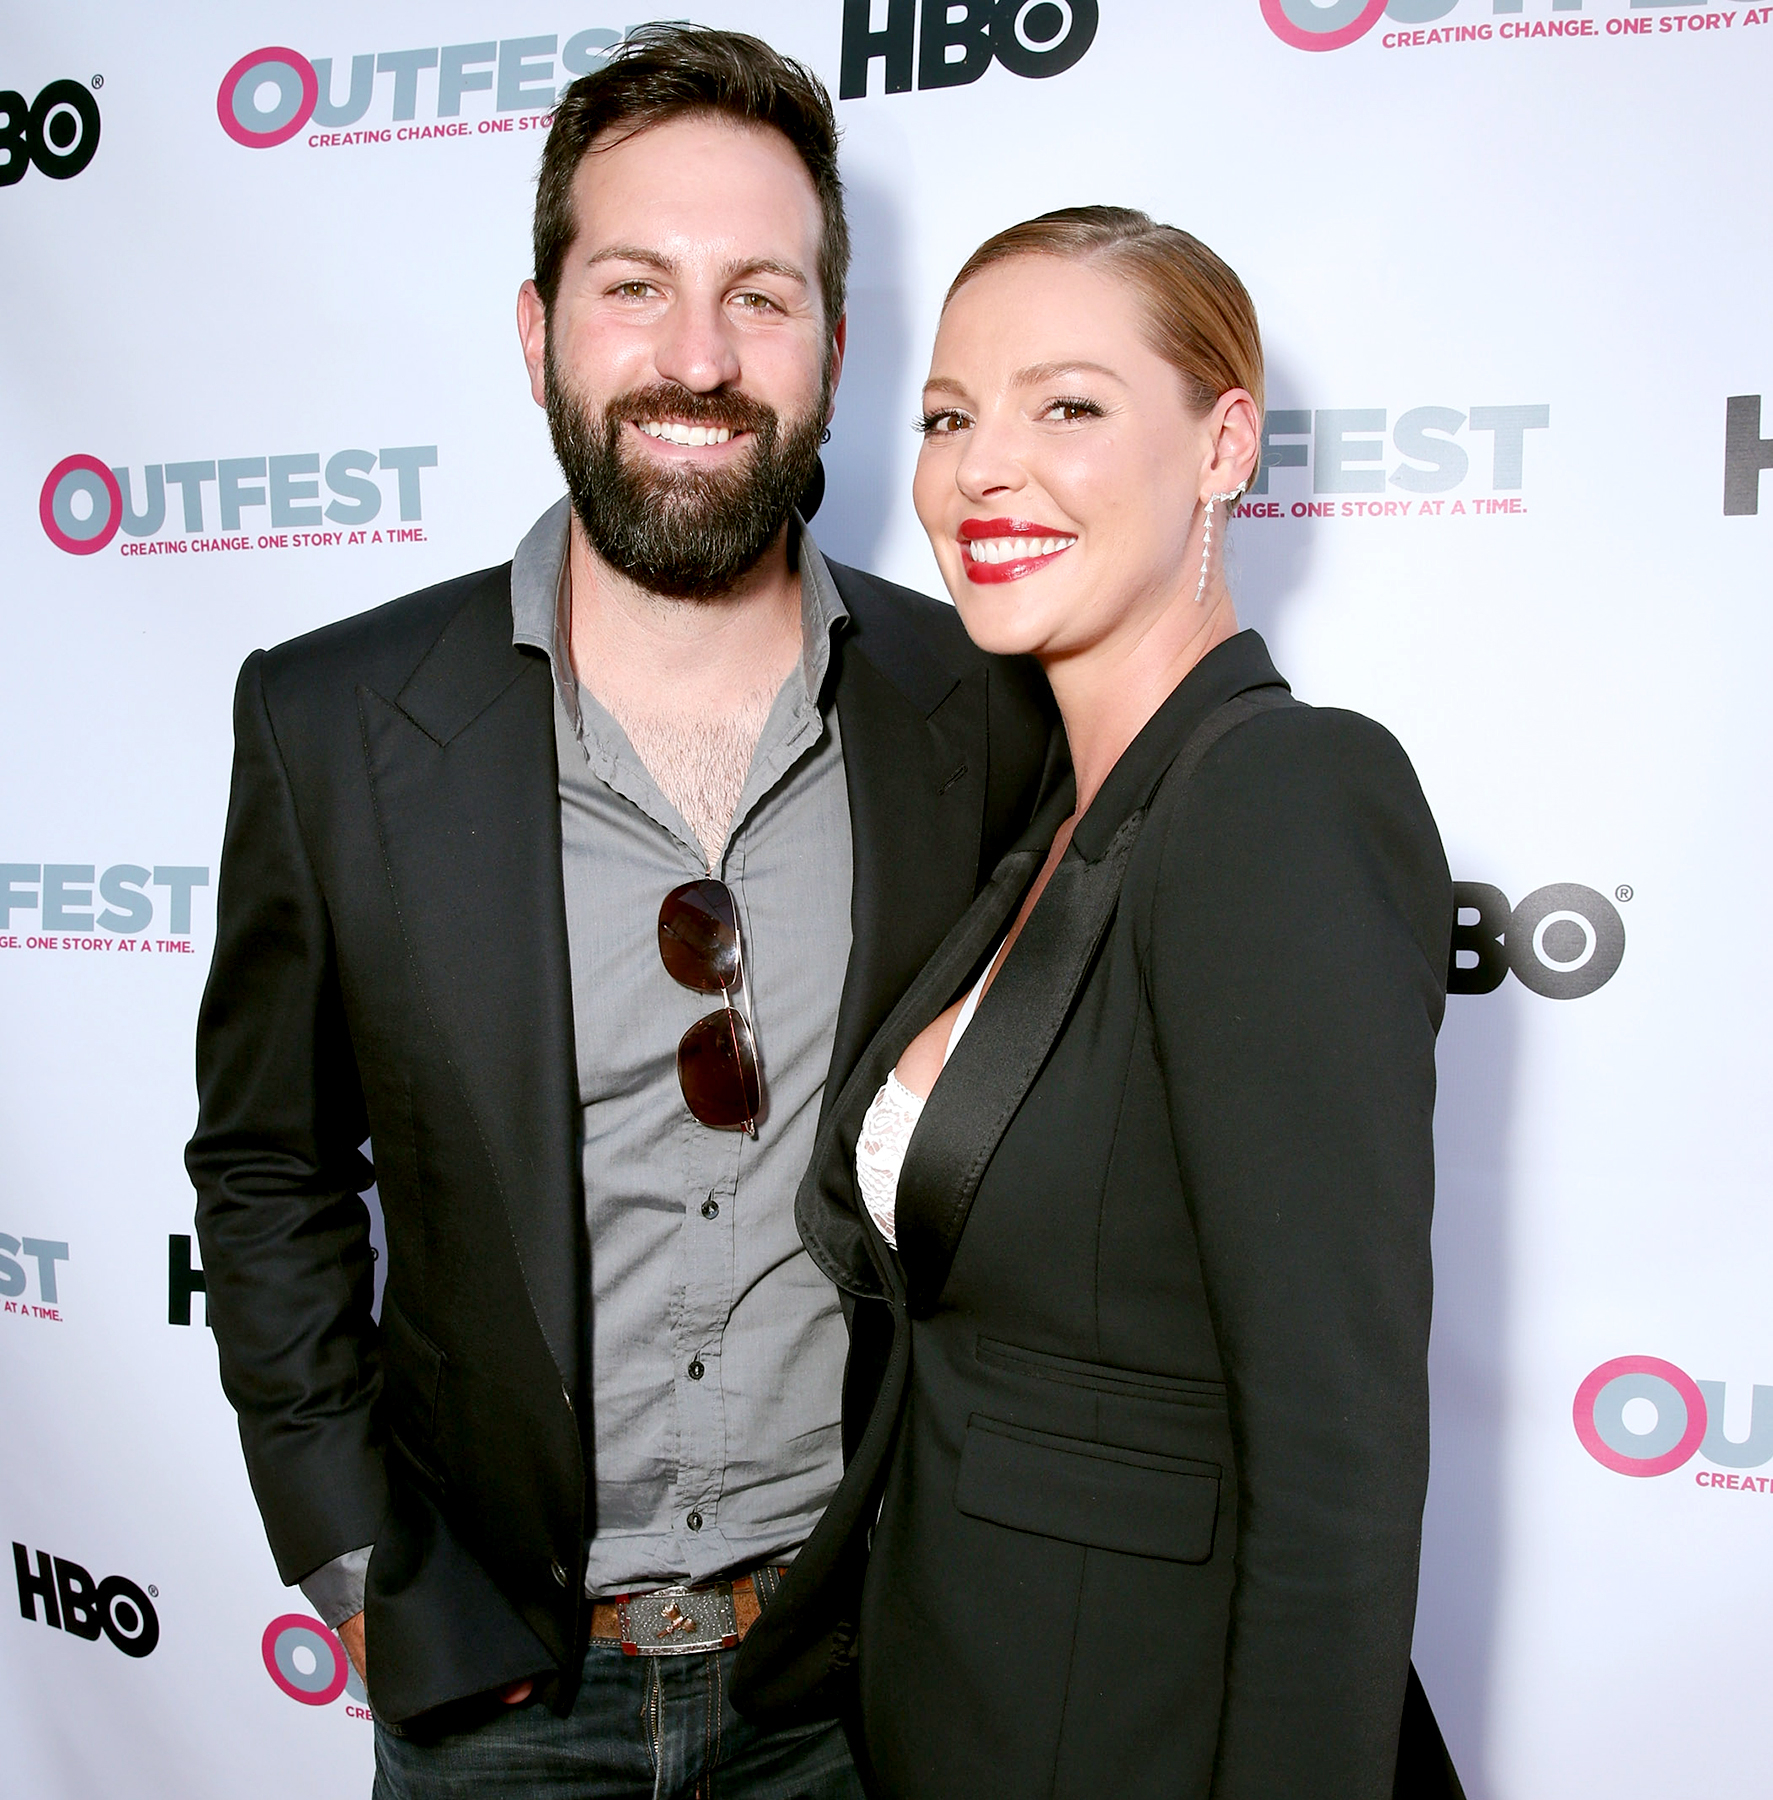 Josh Kelley and Katherine Heigl attend the premiere of IFC Film's